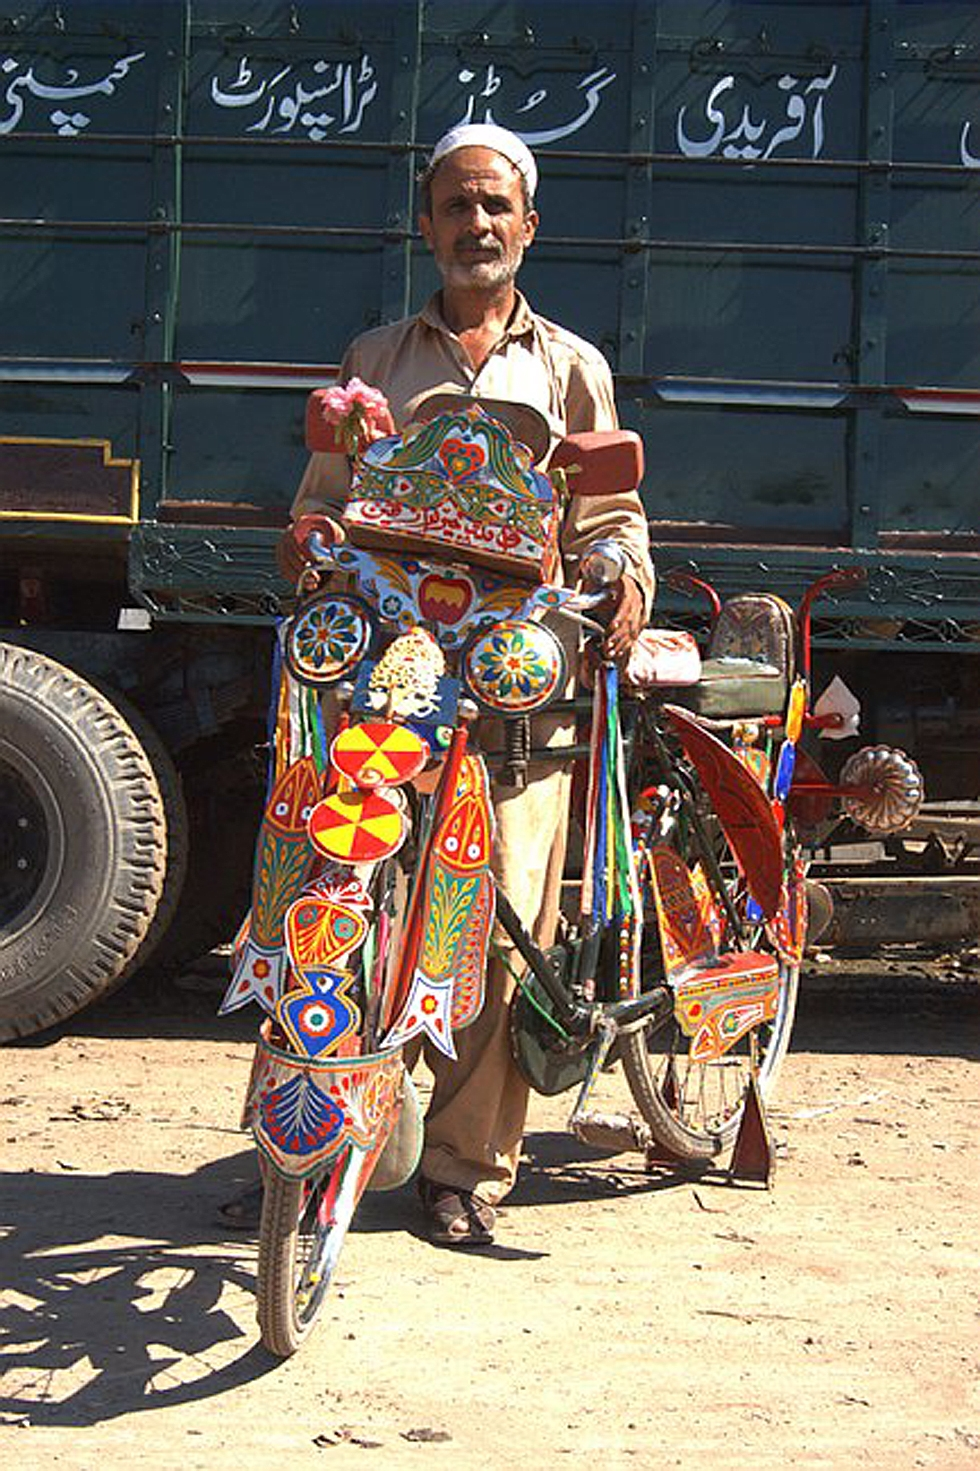 Other forms of public and private transportation in Pakistan such as buses, rickshaws and bicycles also get decorated in the same elaborate manner. (Peter Grant)